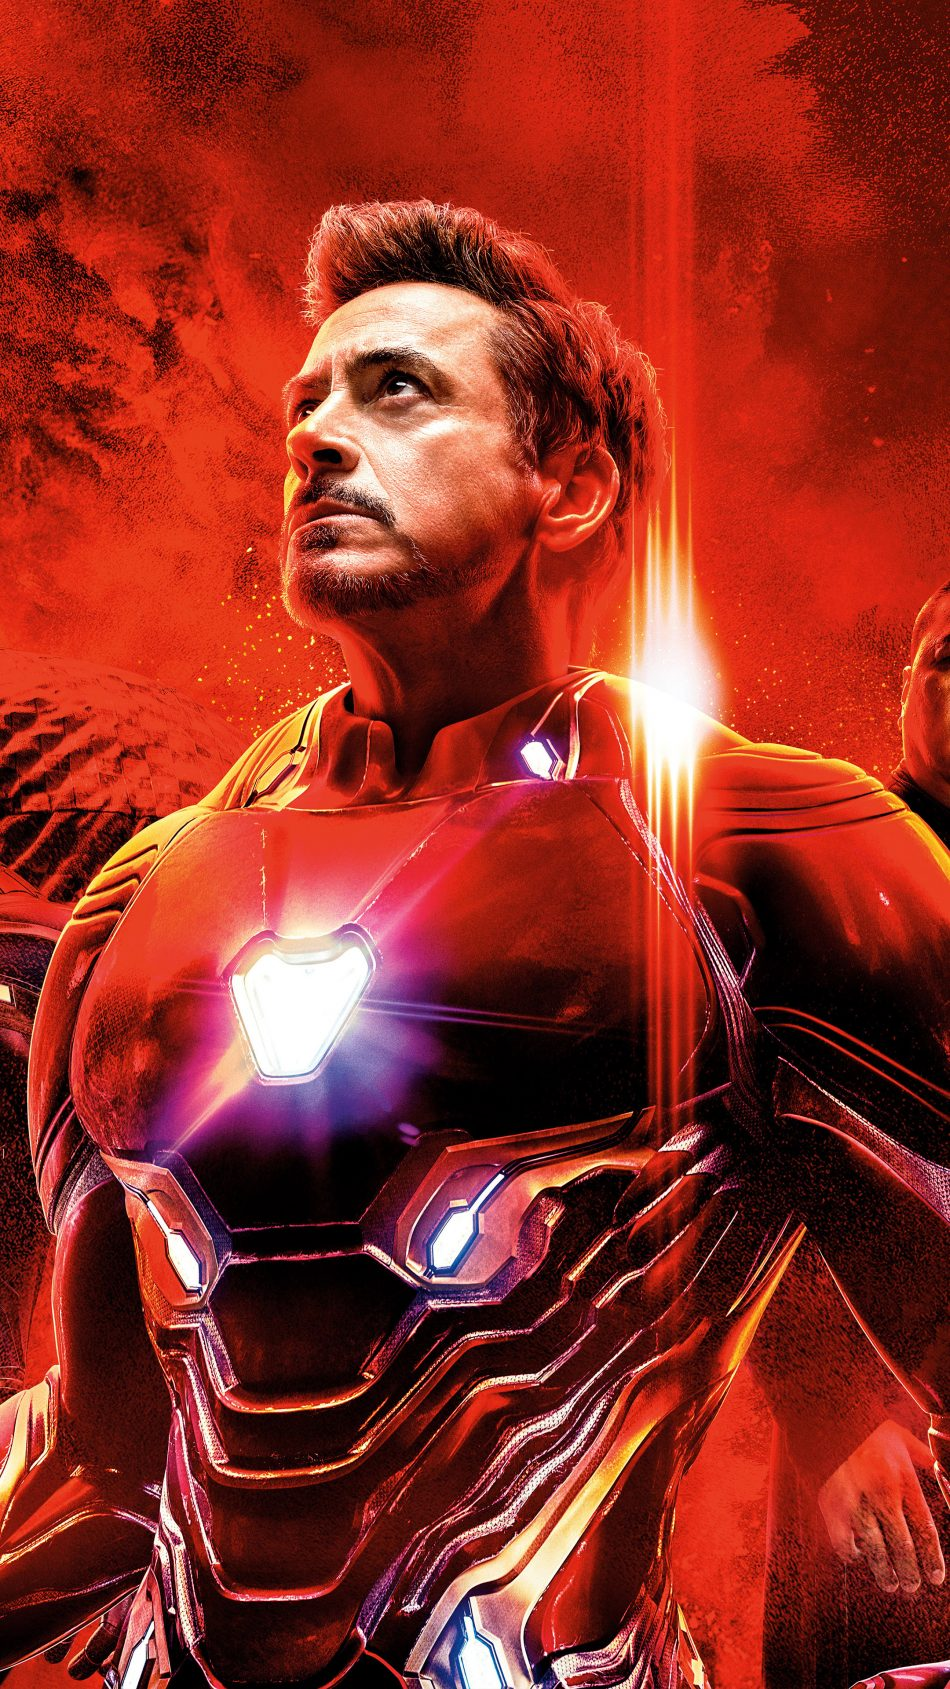 Download Iron Man In Avengers Endgame Free Pure 4k Ultra Hd Mobile